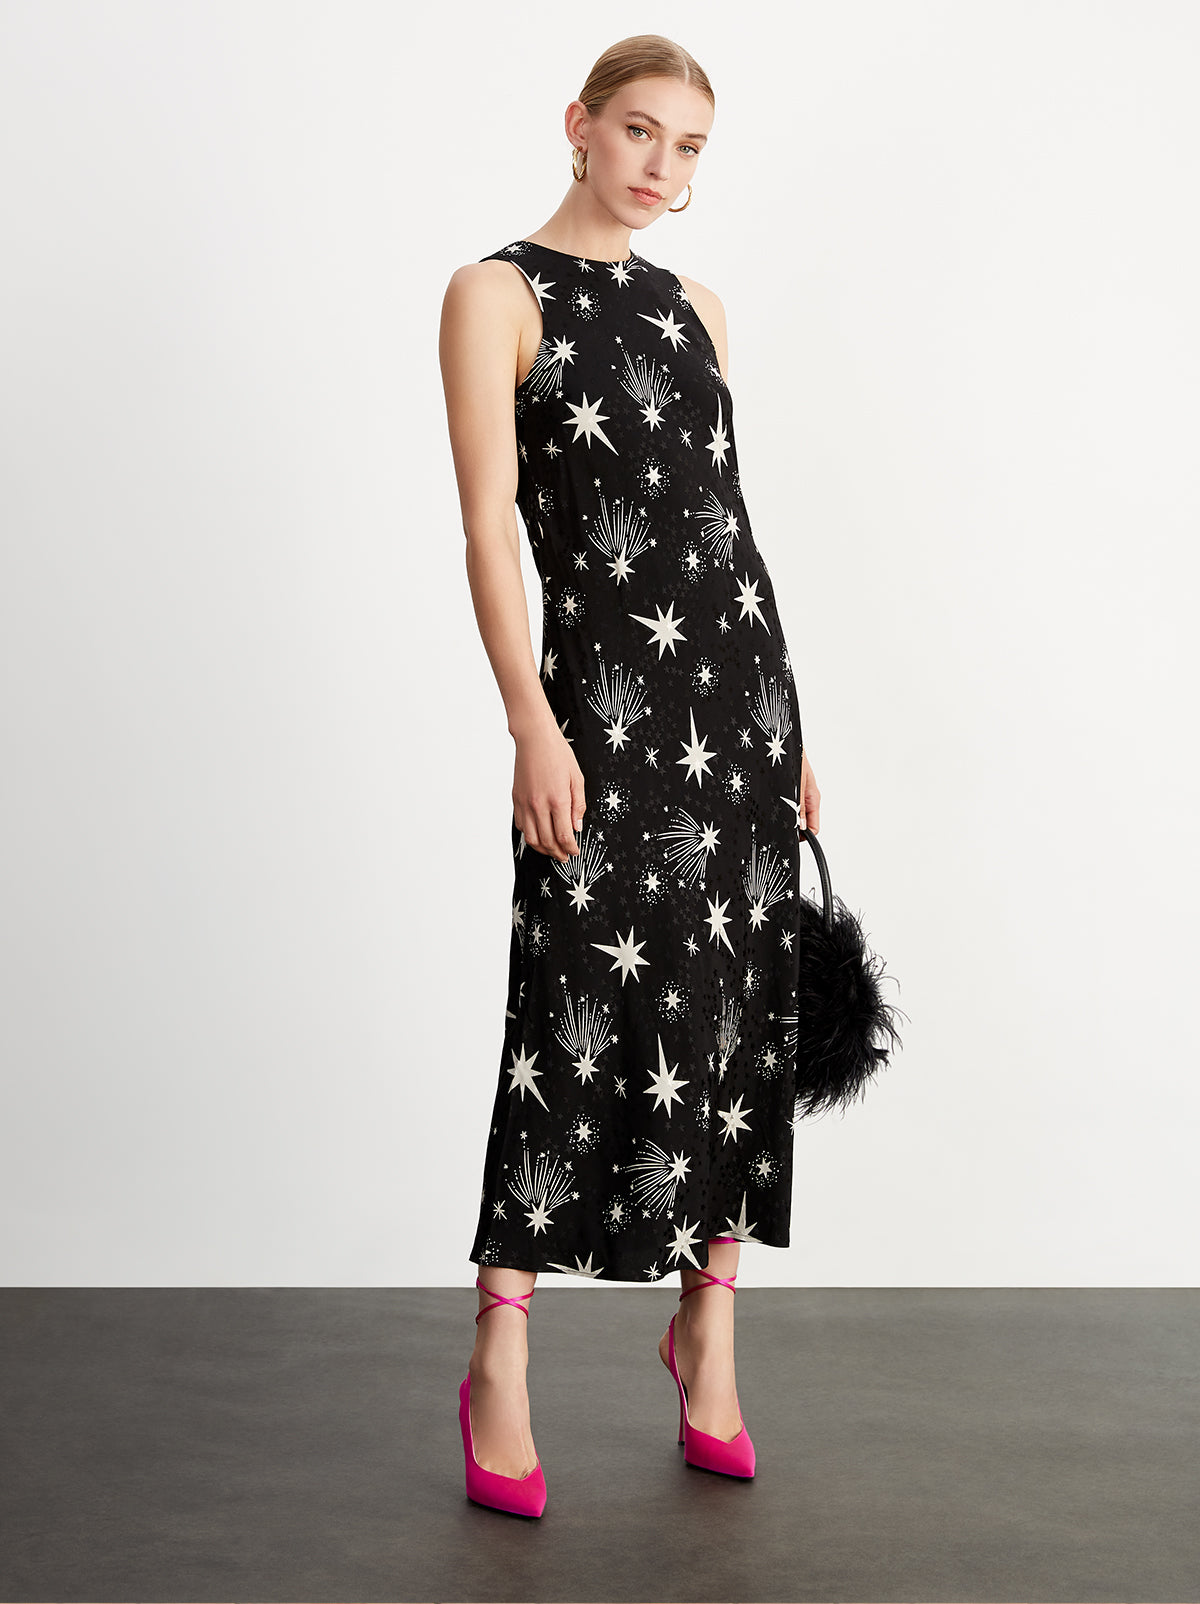 Iris Black Star Print Dress by KITRI Studio